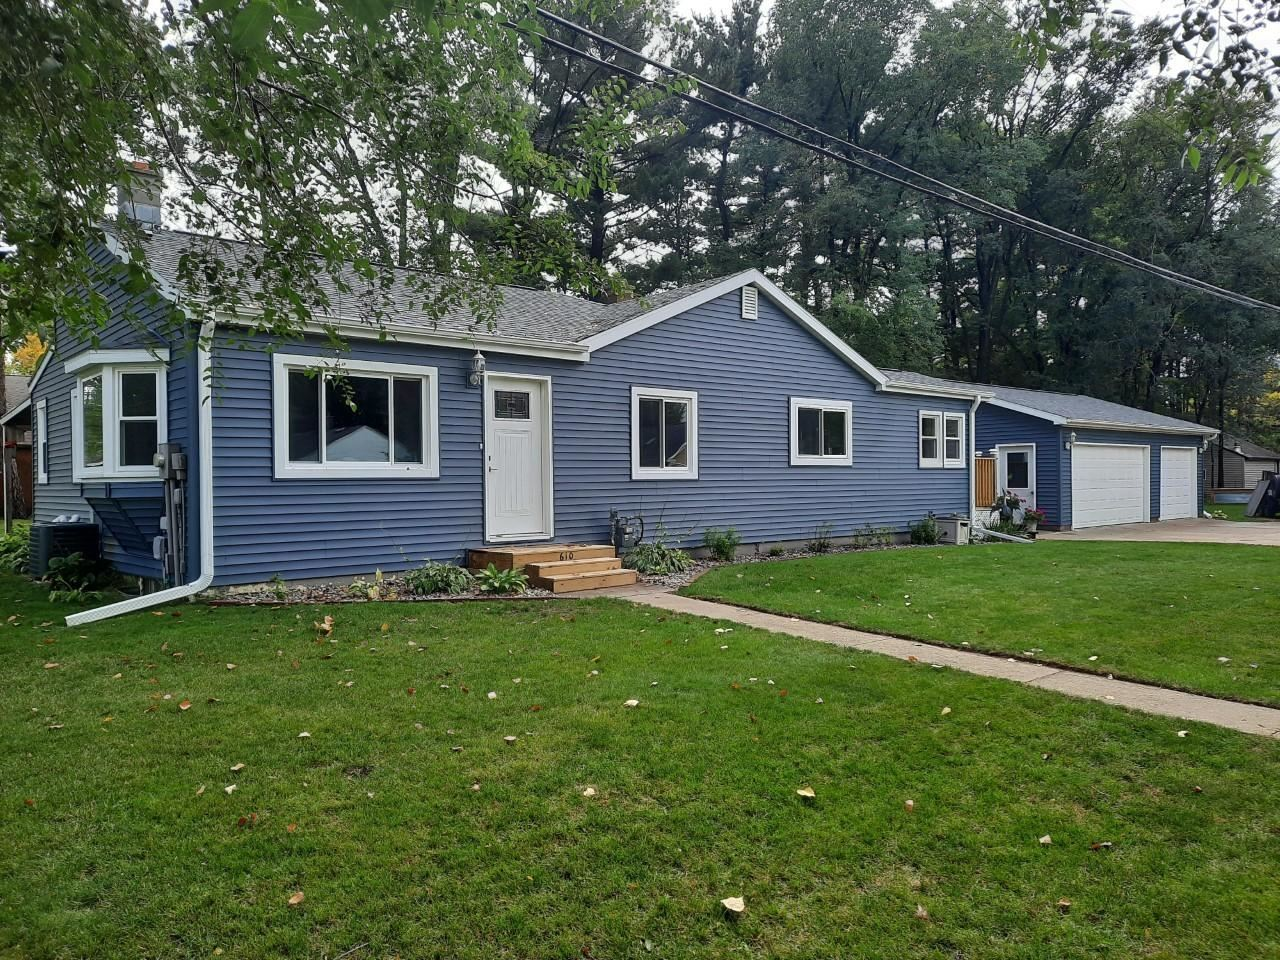 610 Winona St, Campbell, WI 54603 - MLS#: 1711620